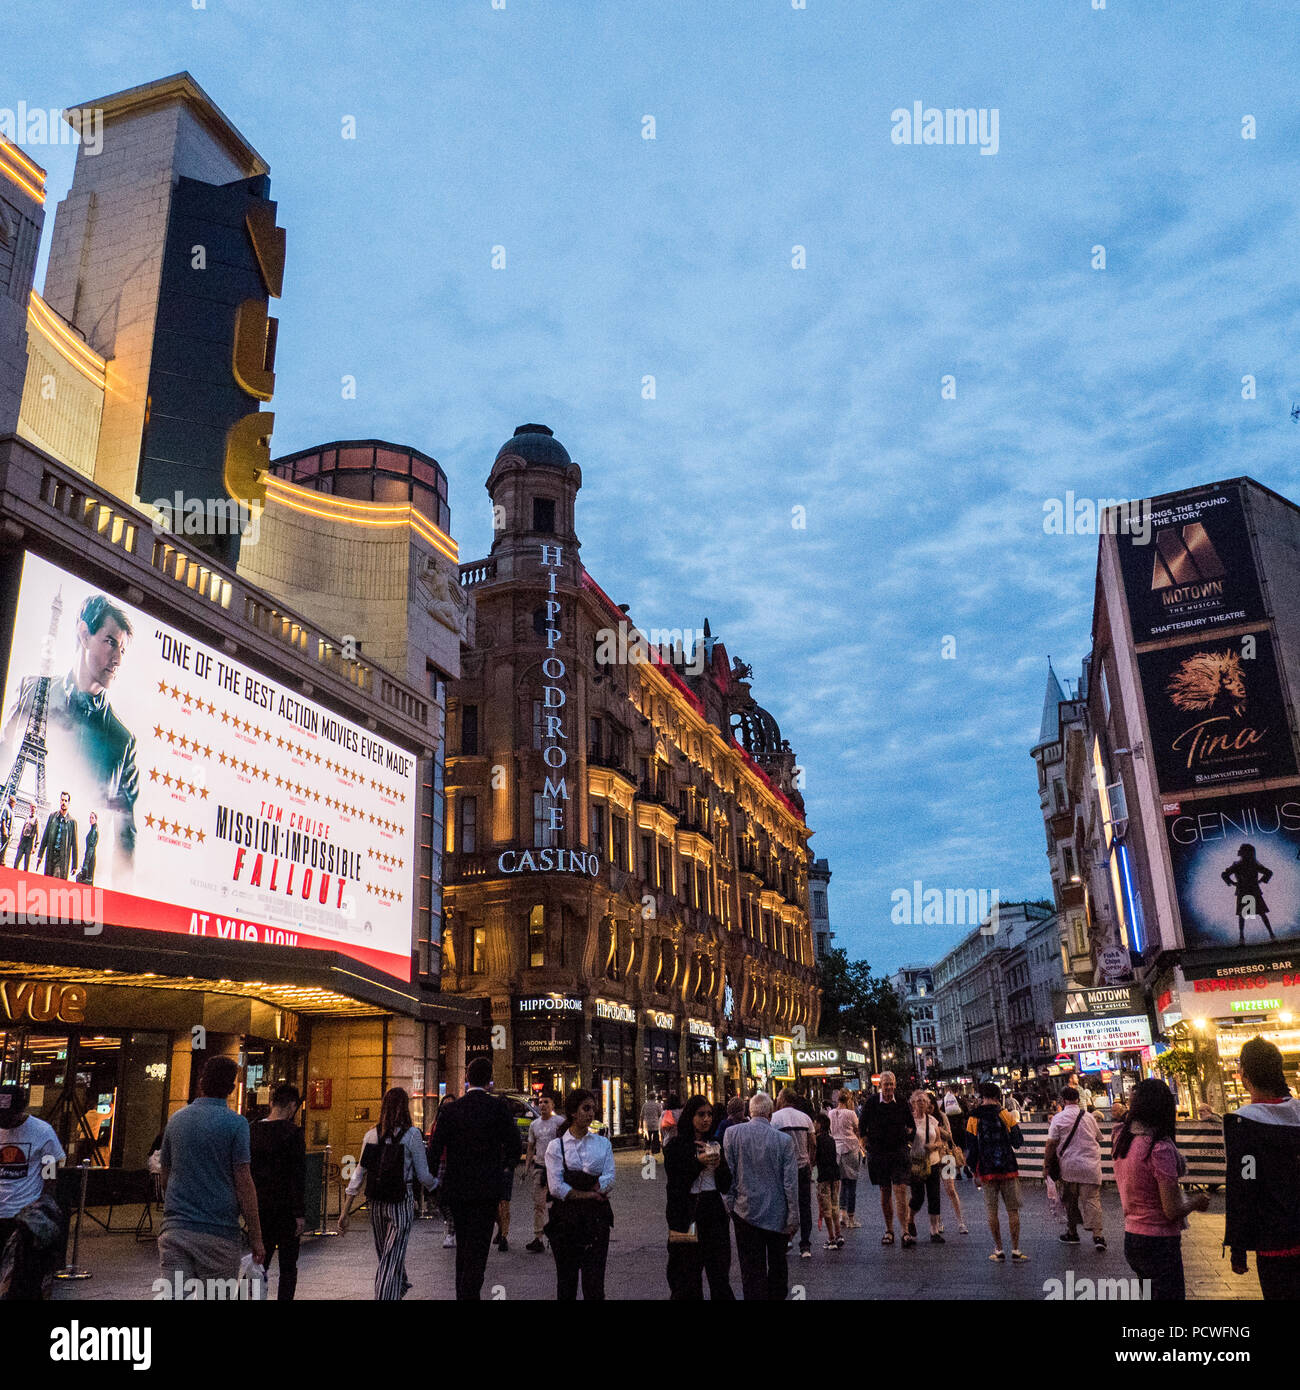 Leicester Square. London - Stock Image